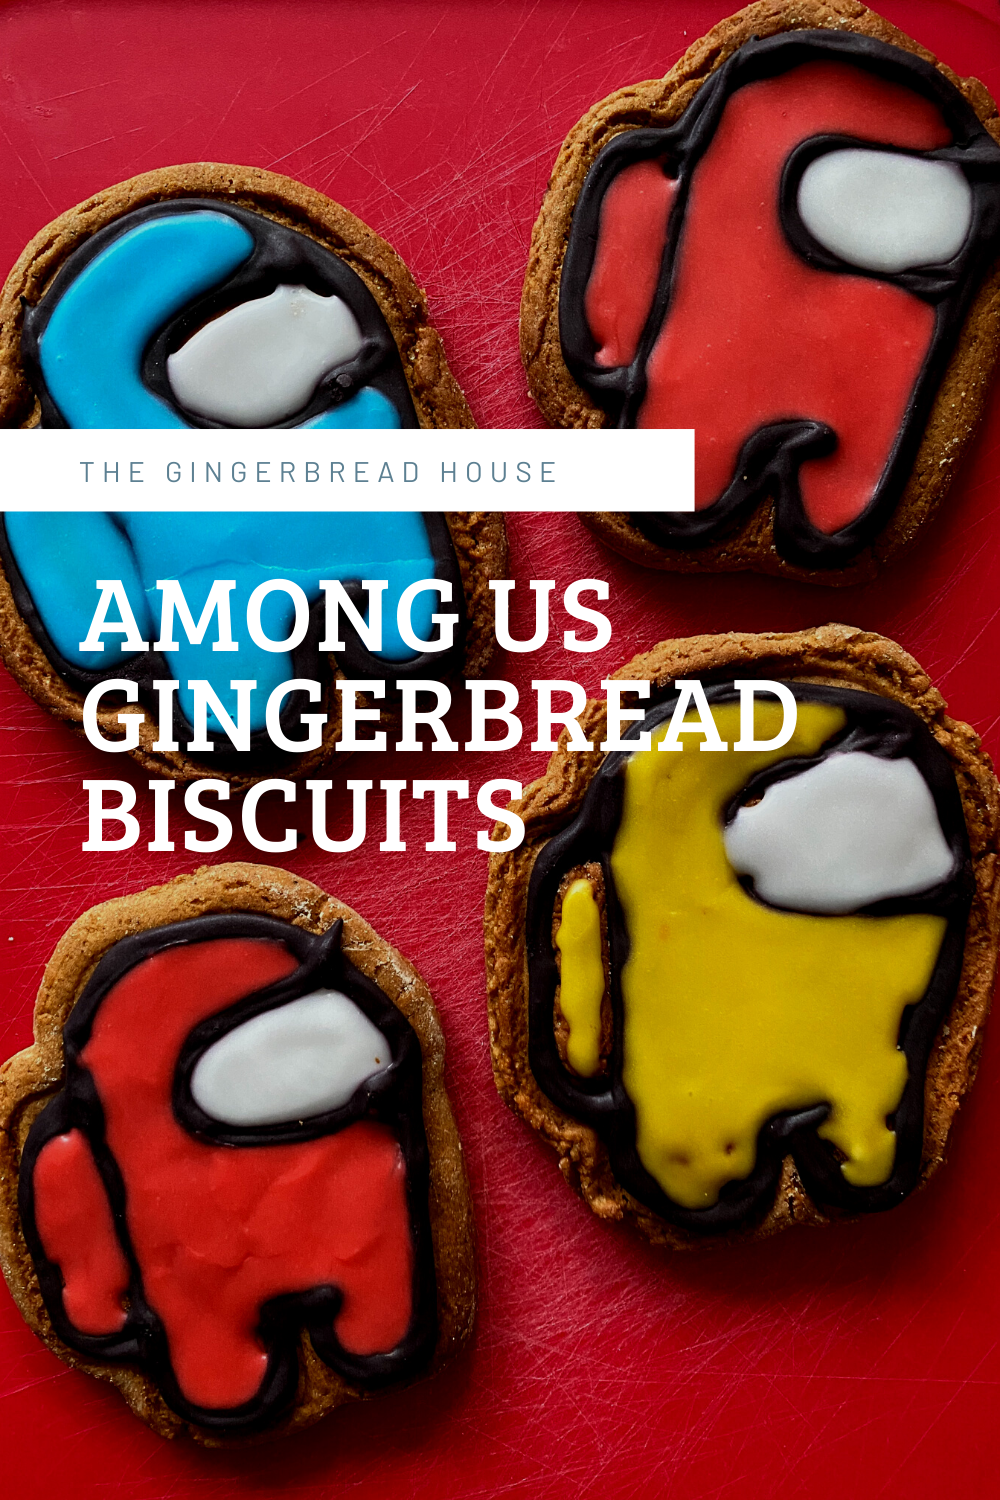 Among Us gingerbread biscuits